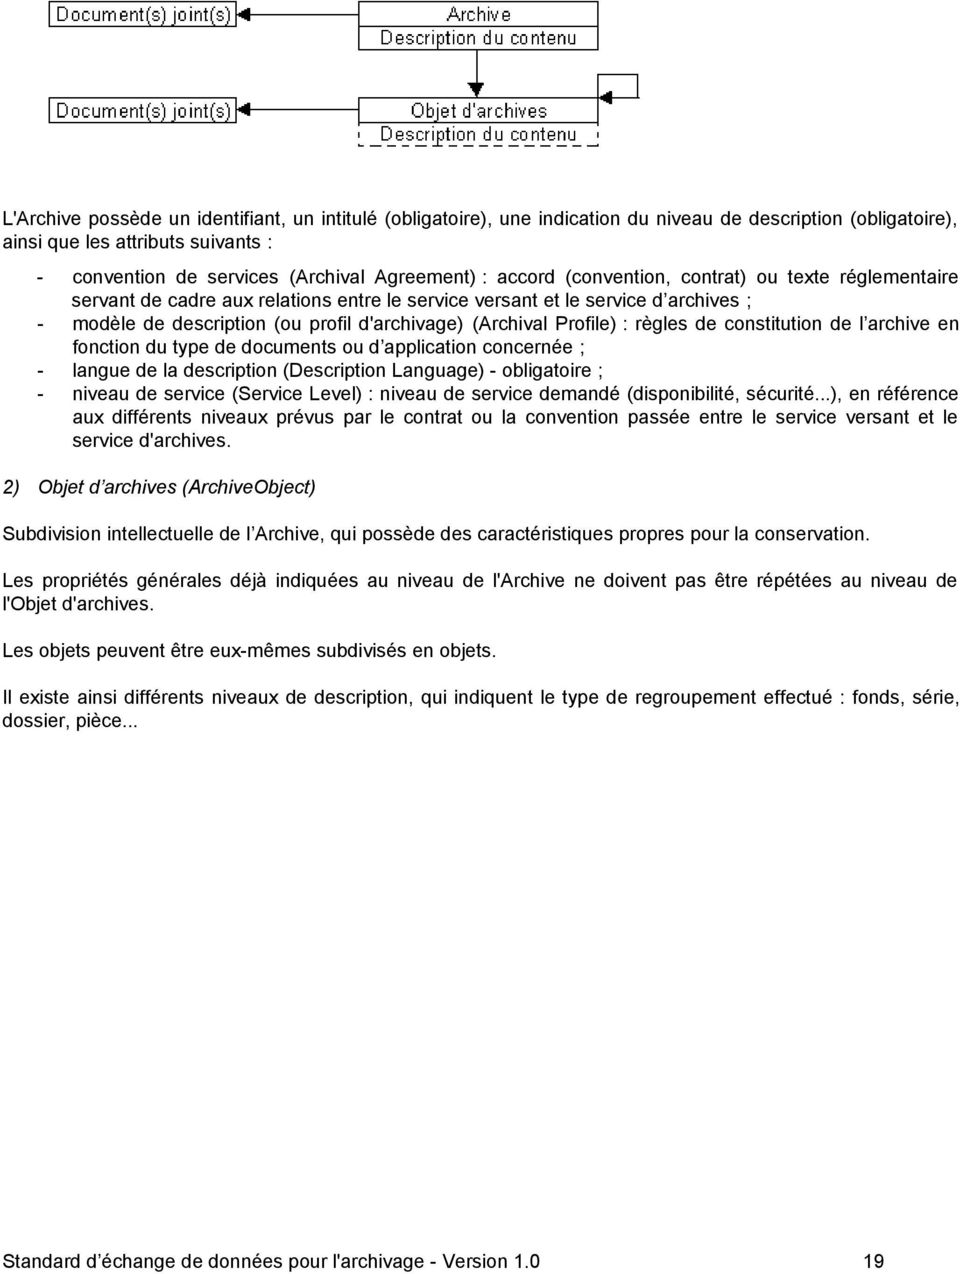 Profile) : règles de constitution de l archive en fonction du type de documents ou d application concernée ; - langue de la description (Description Language) - obligatoire ; - niveau de service